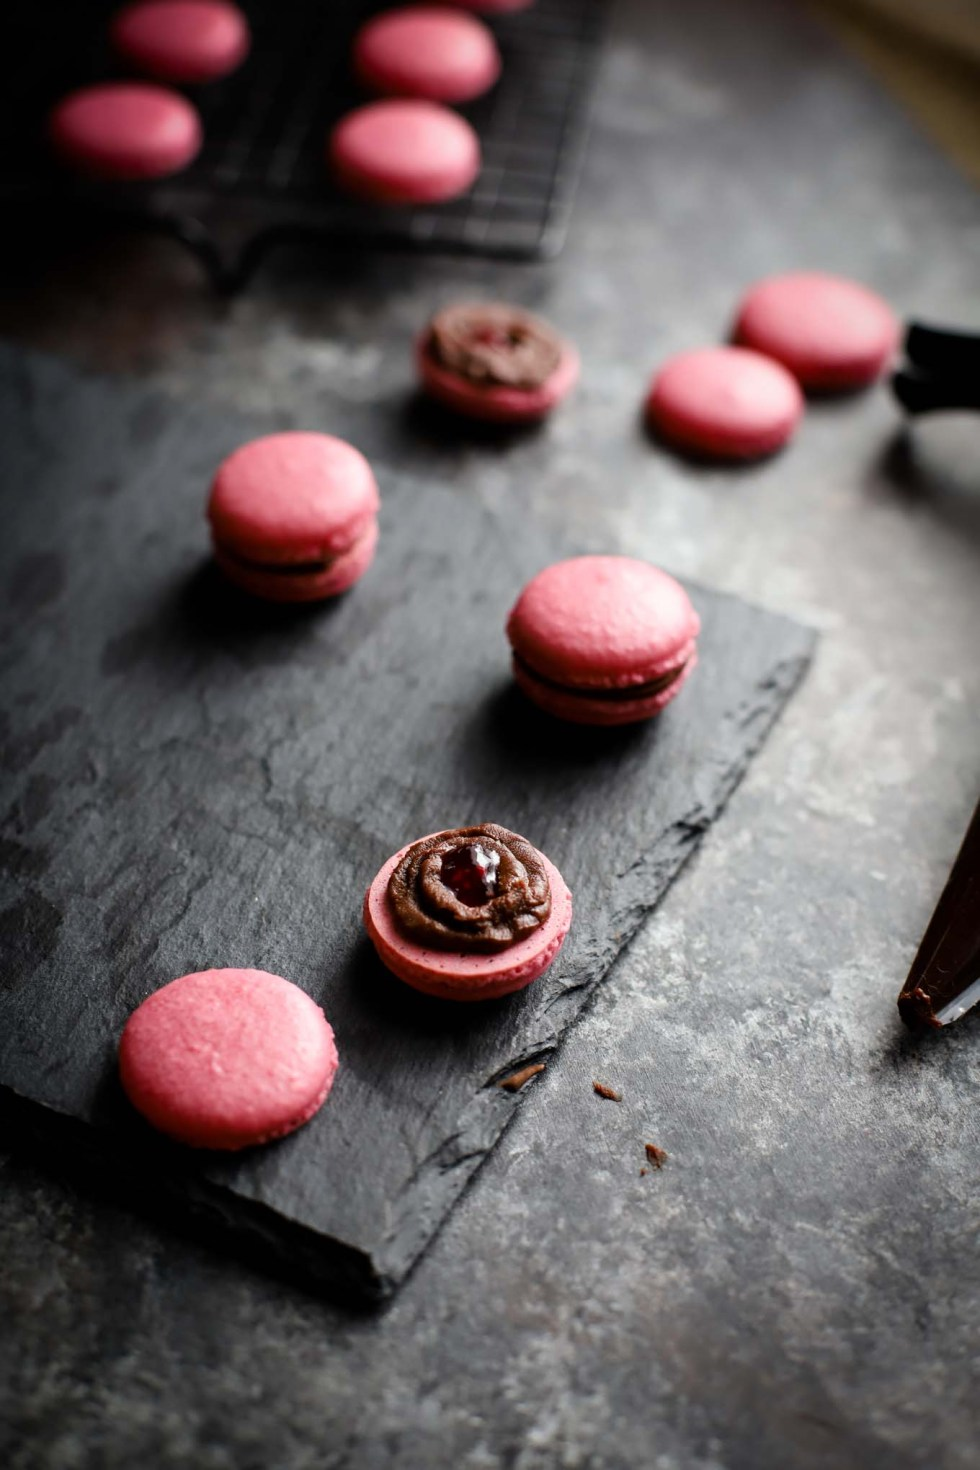 A photo of half a macaron topped with a ring of chocolate ganache and dab of raspberry jam in the middle.